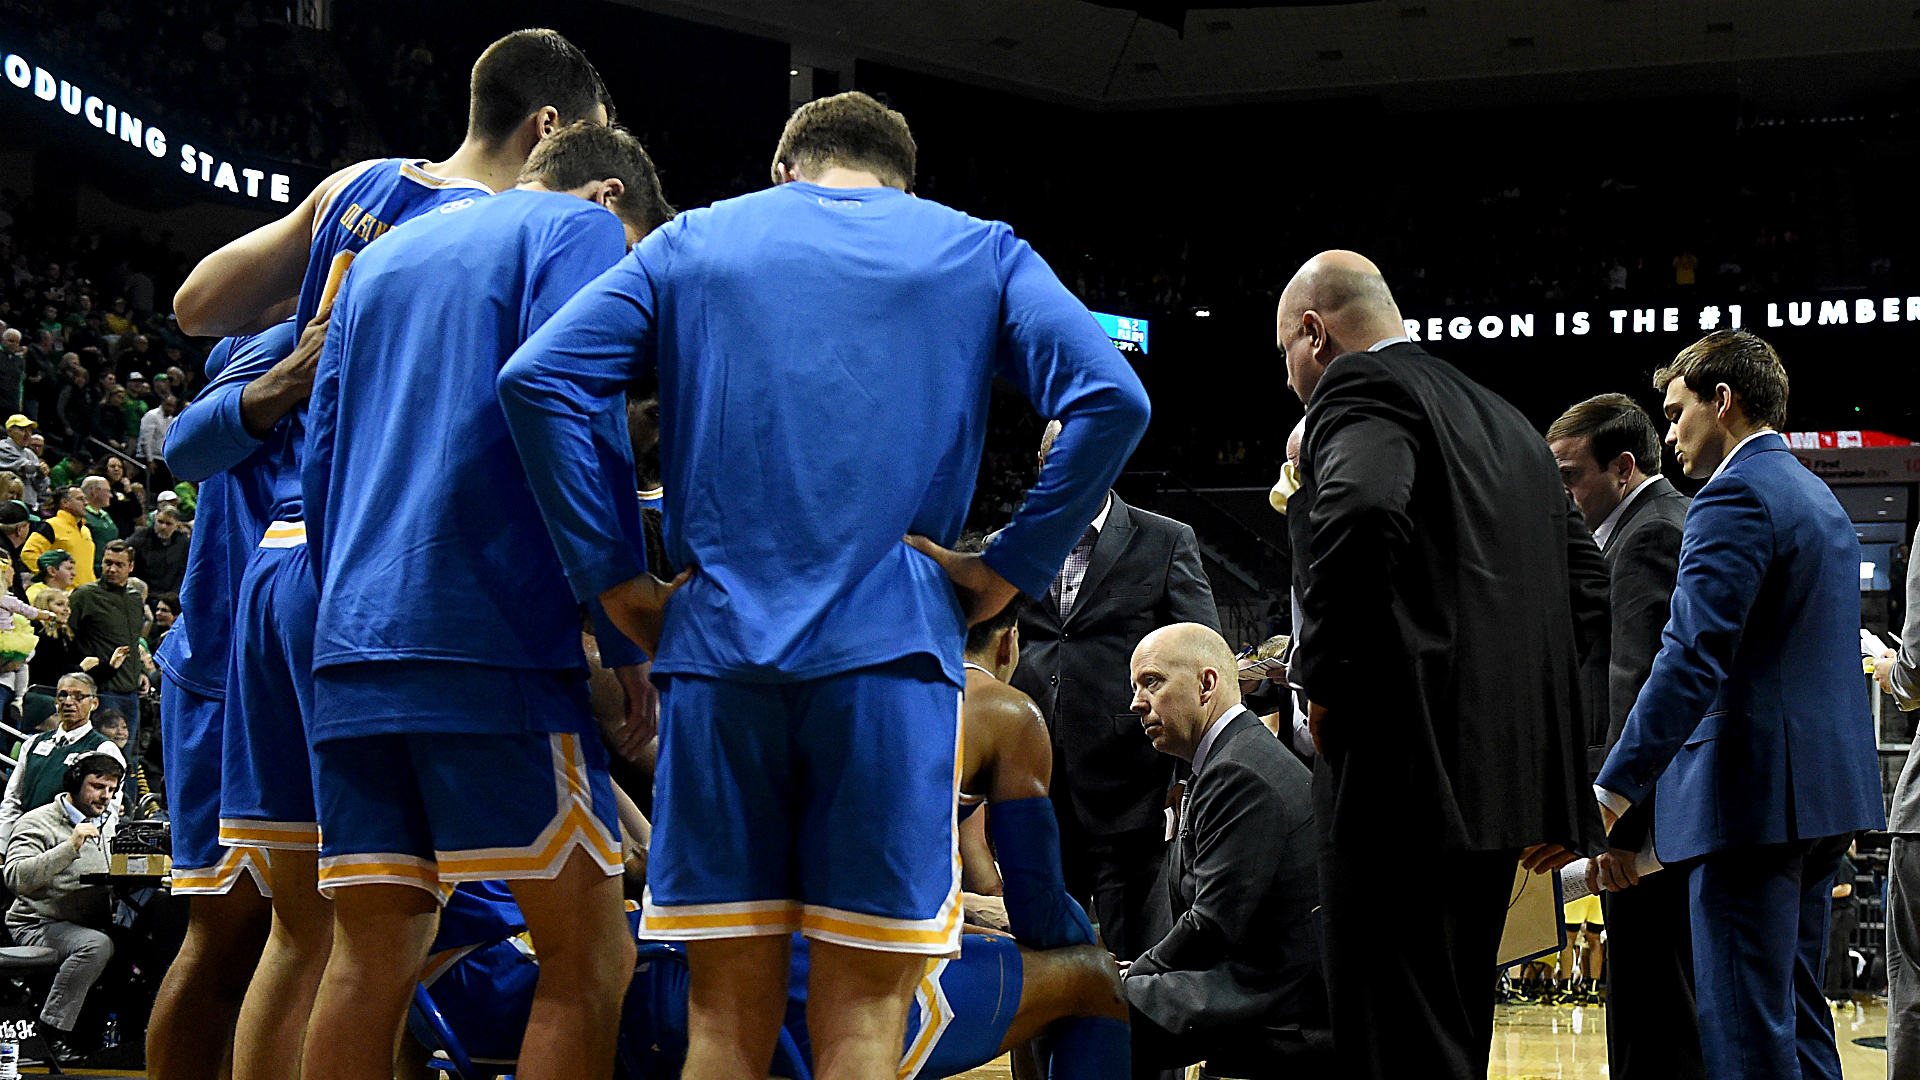 UCLA's Mick Cronin 'bailed out' after foul error in Sweet 16 win vs. Alabama